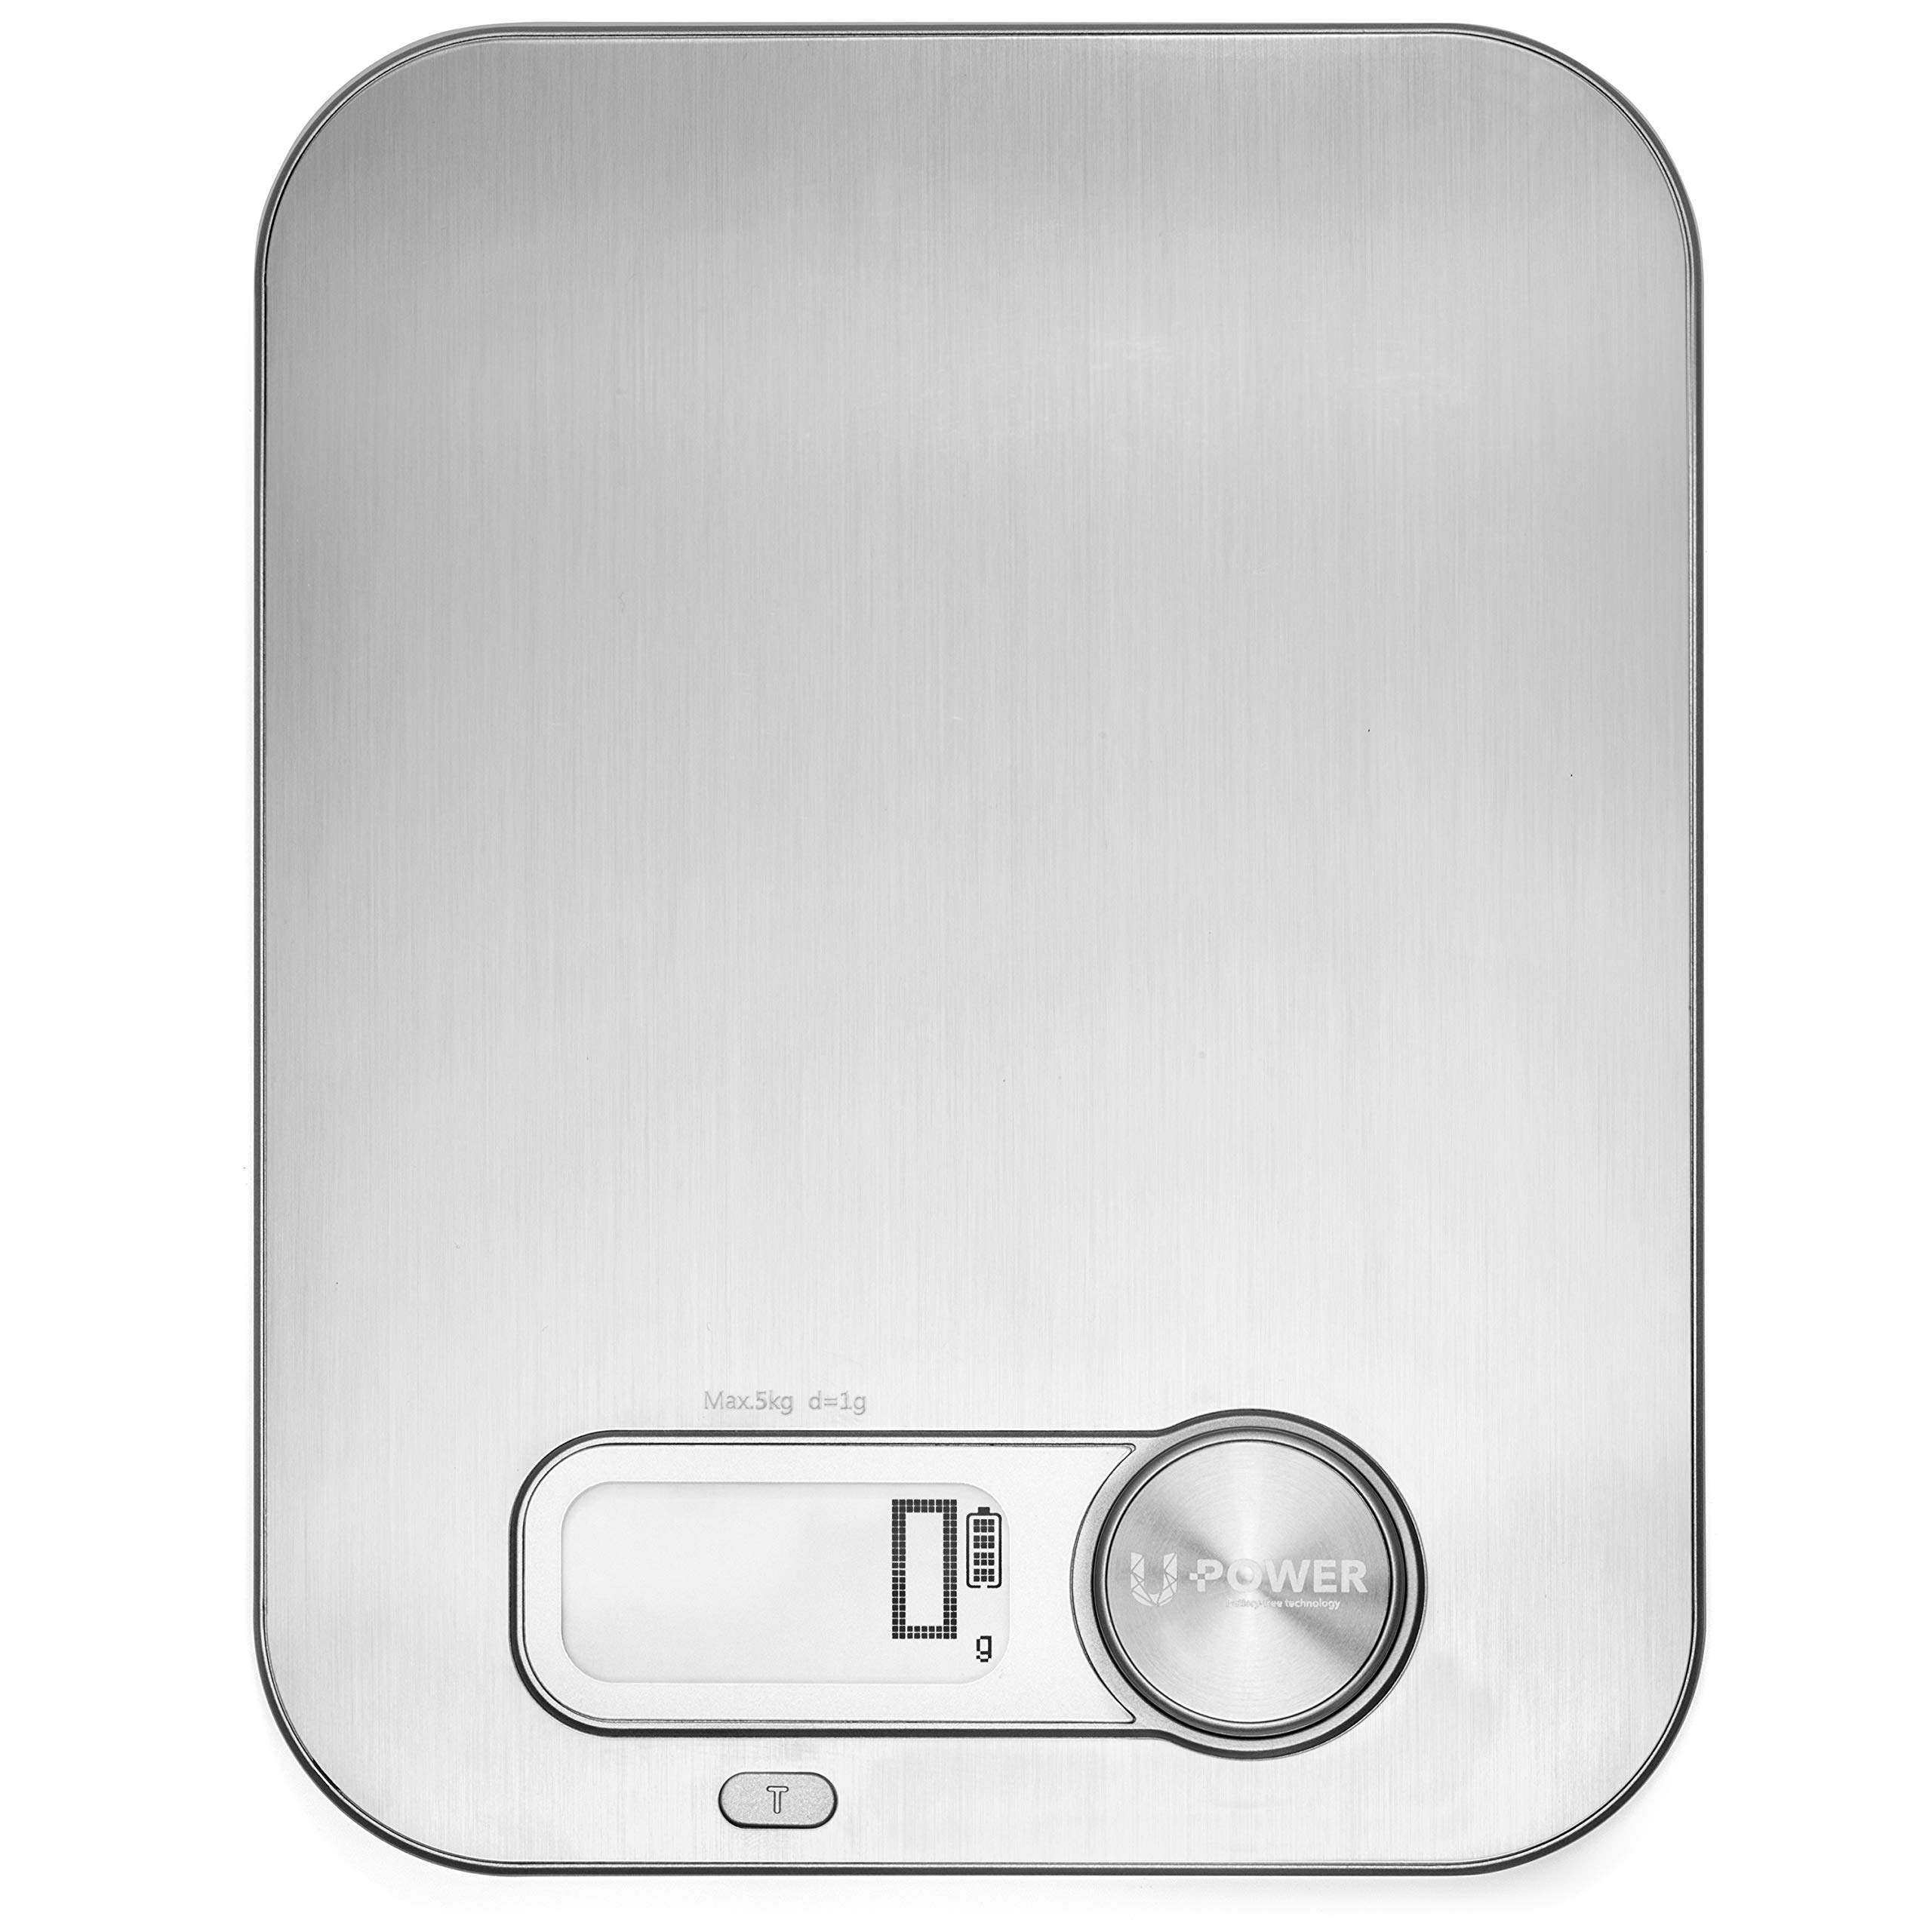 Vspeed ECO Digital Kitchen Scales NO BATTERY REQUIRED Stainless steel 11Lb Cord Free